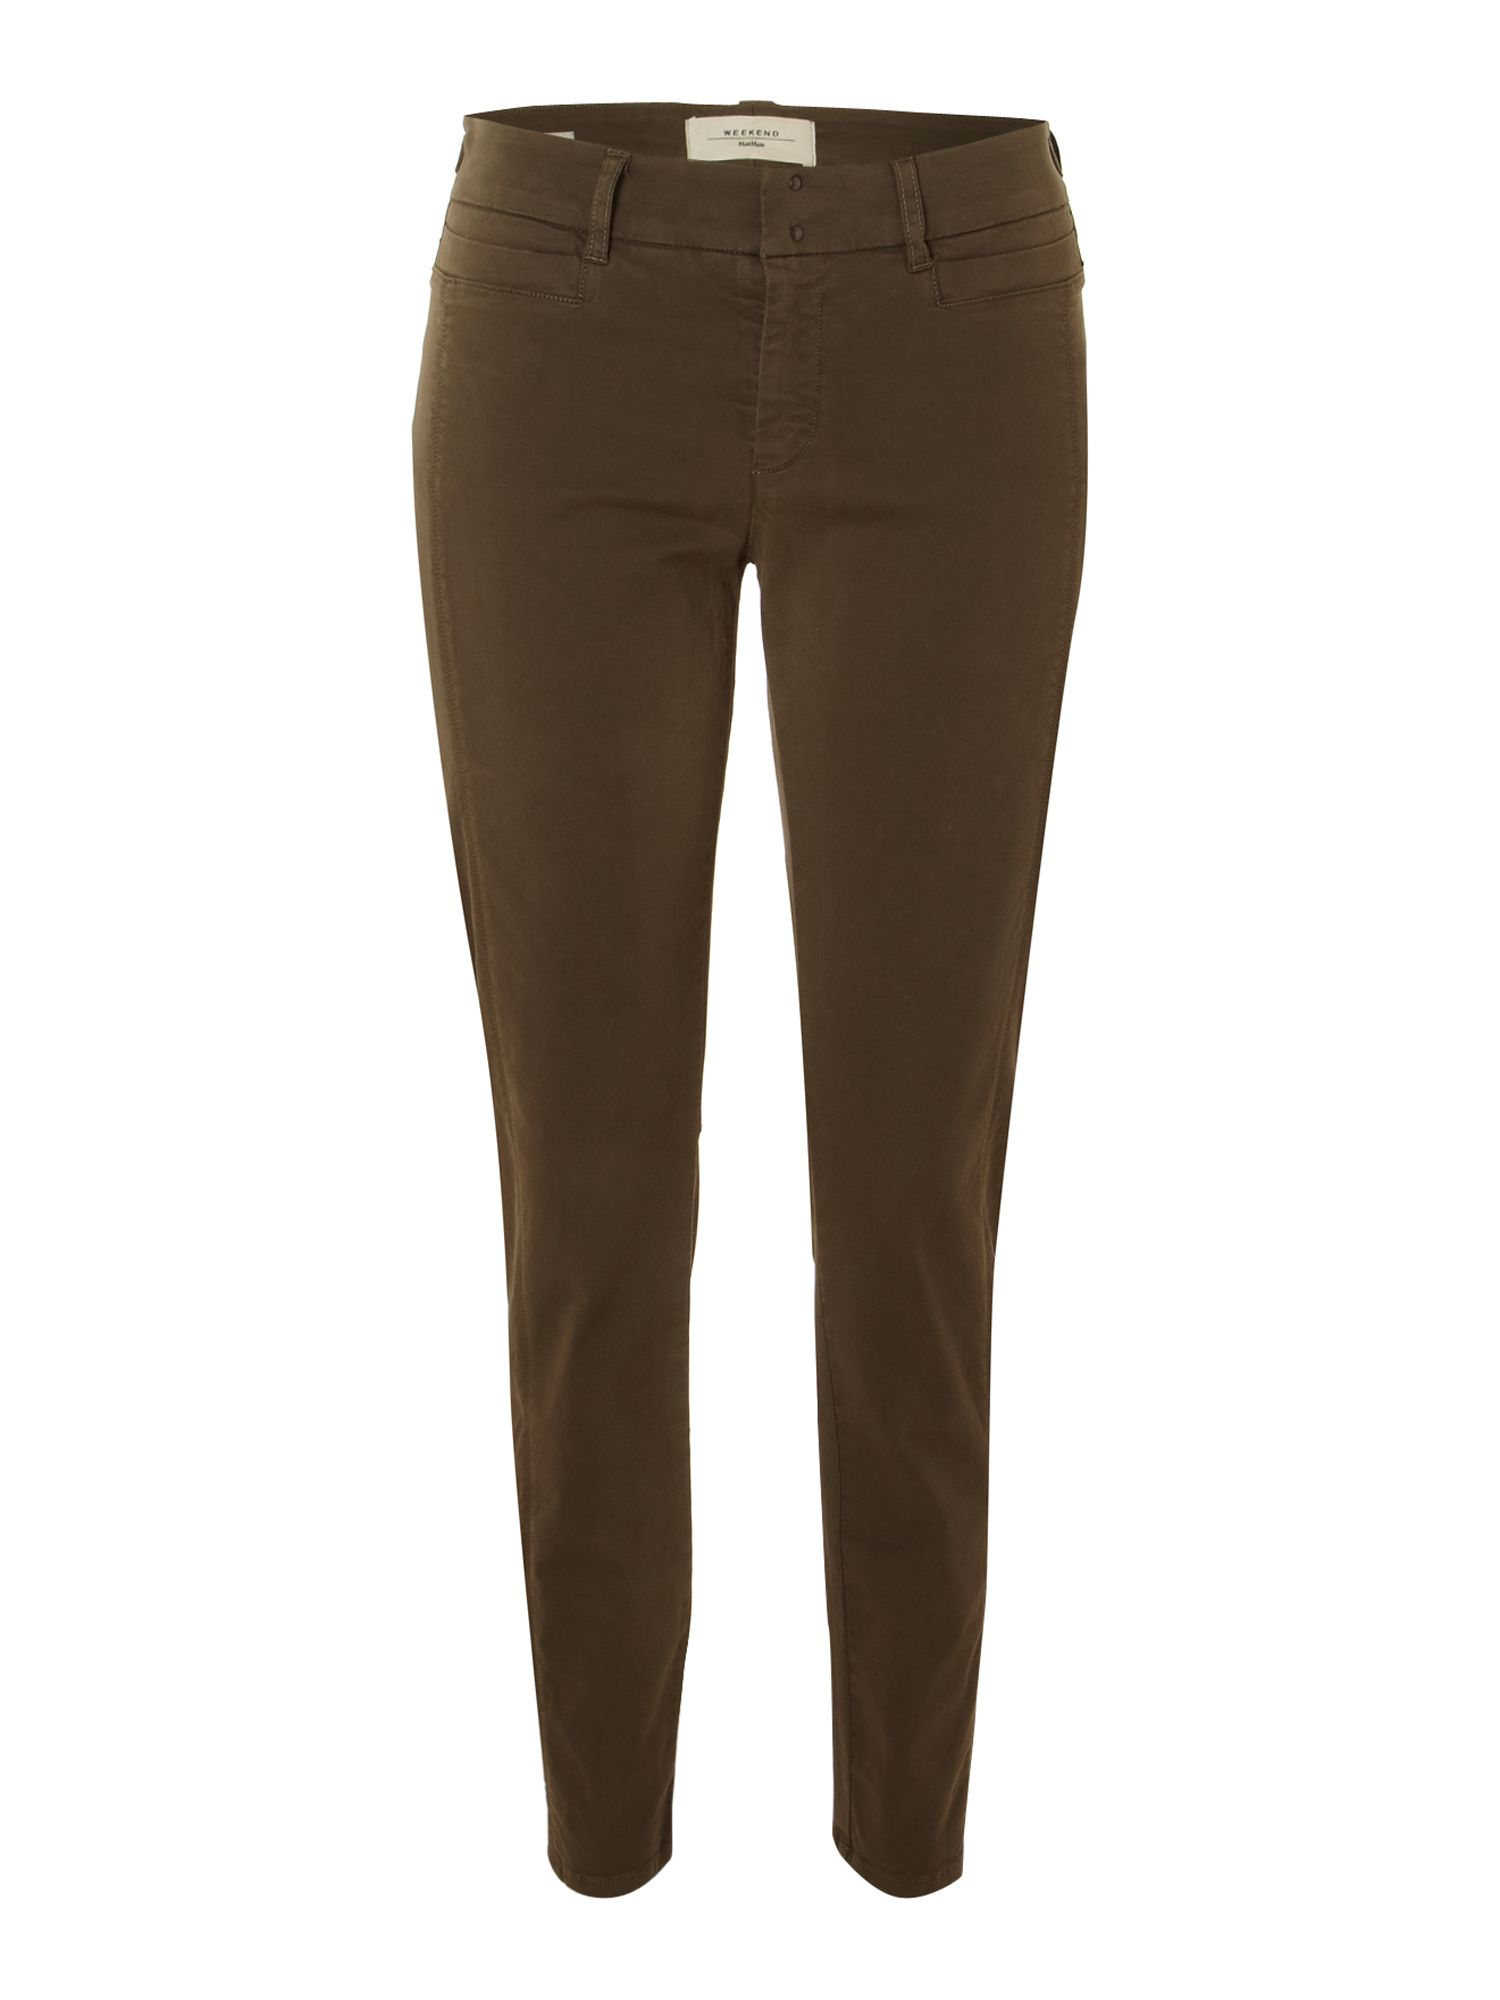 Kate slim fit chino trousers